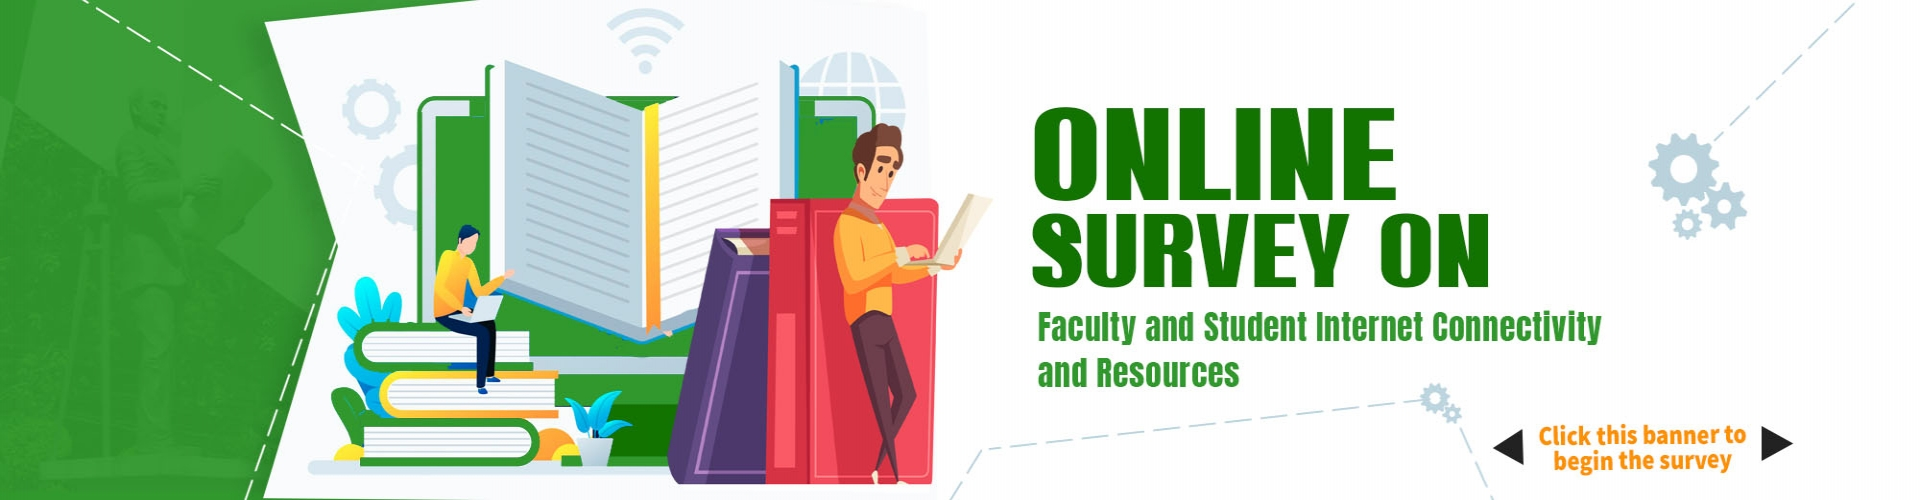 Online Survey on Faculty and Students Internet Connectivity and Resources